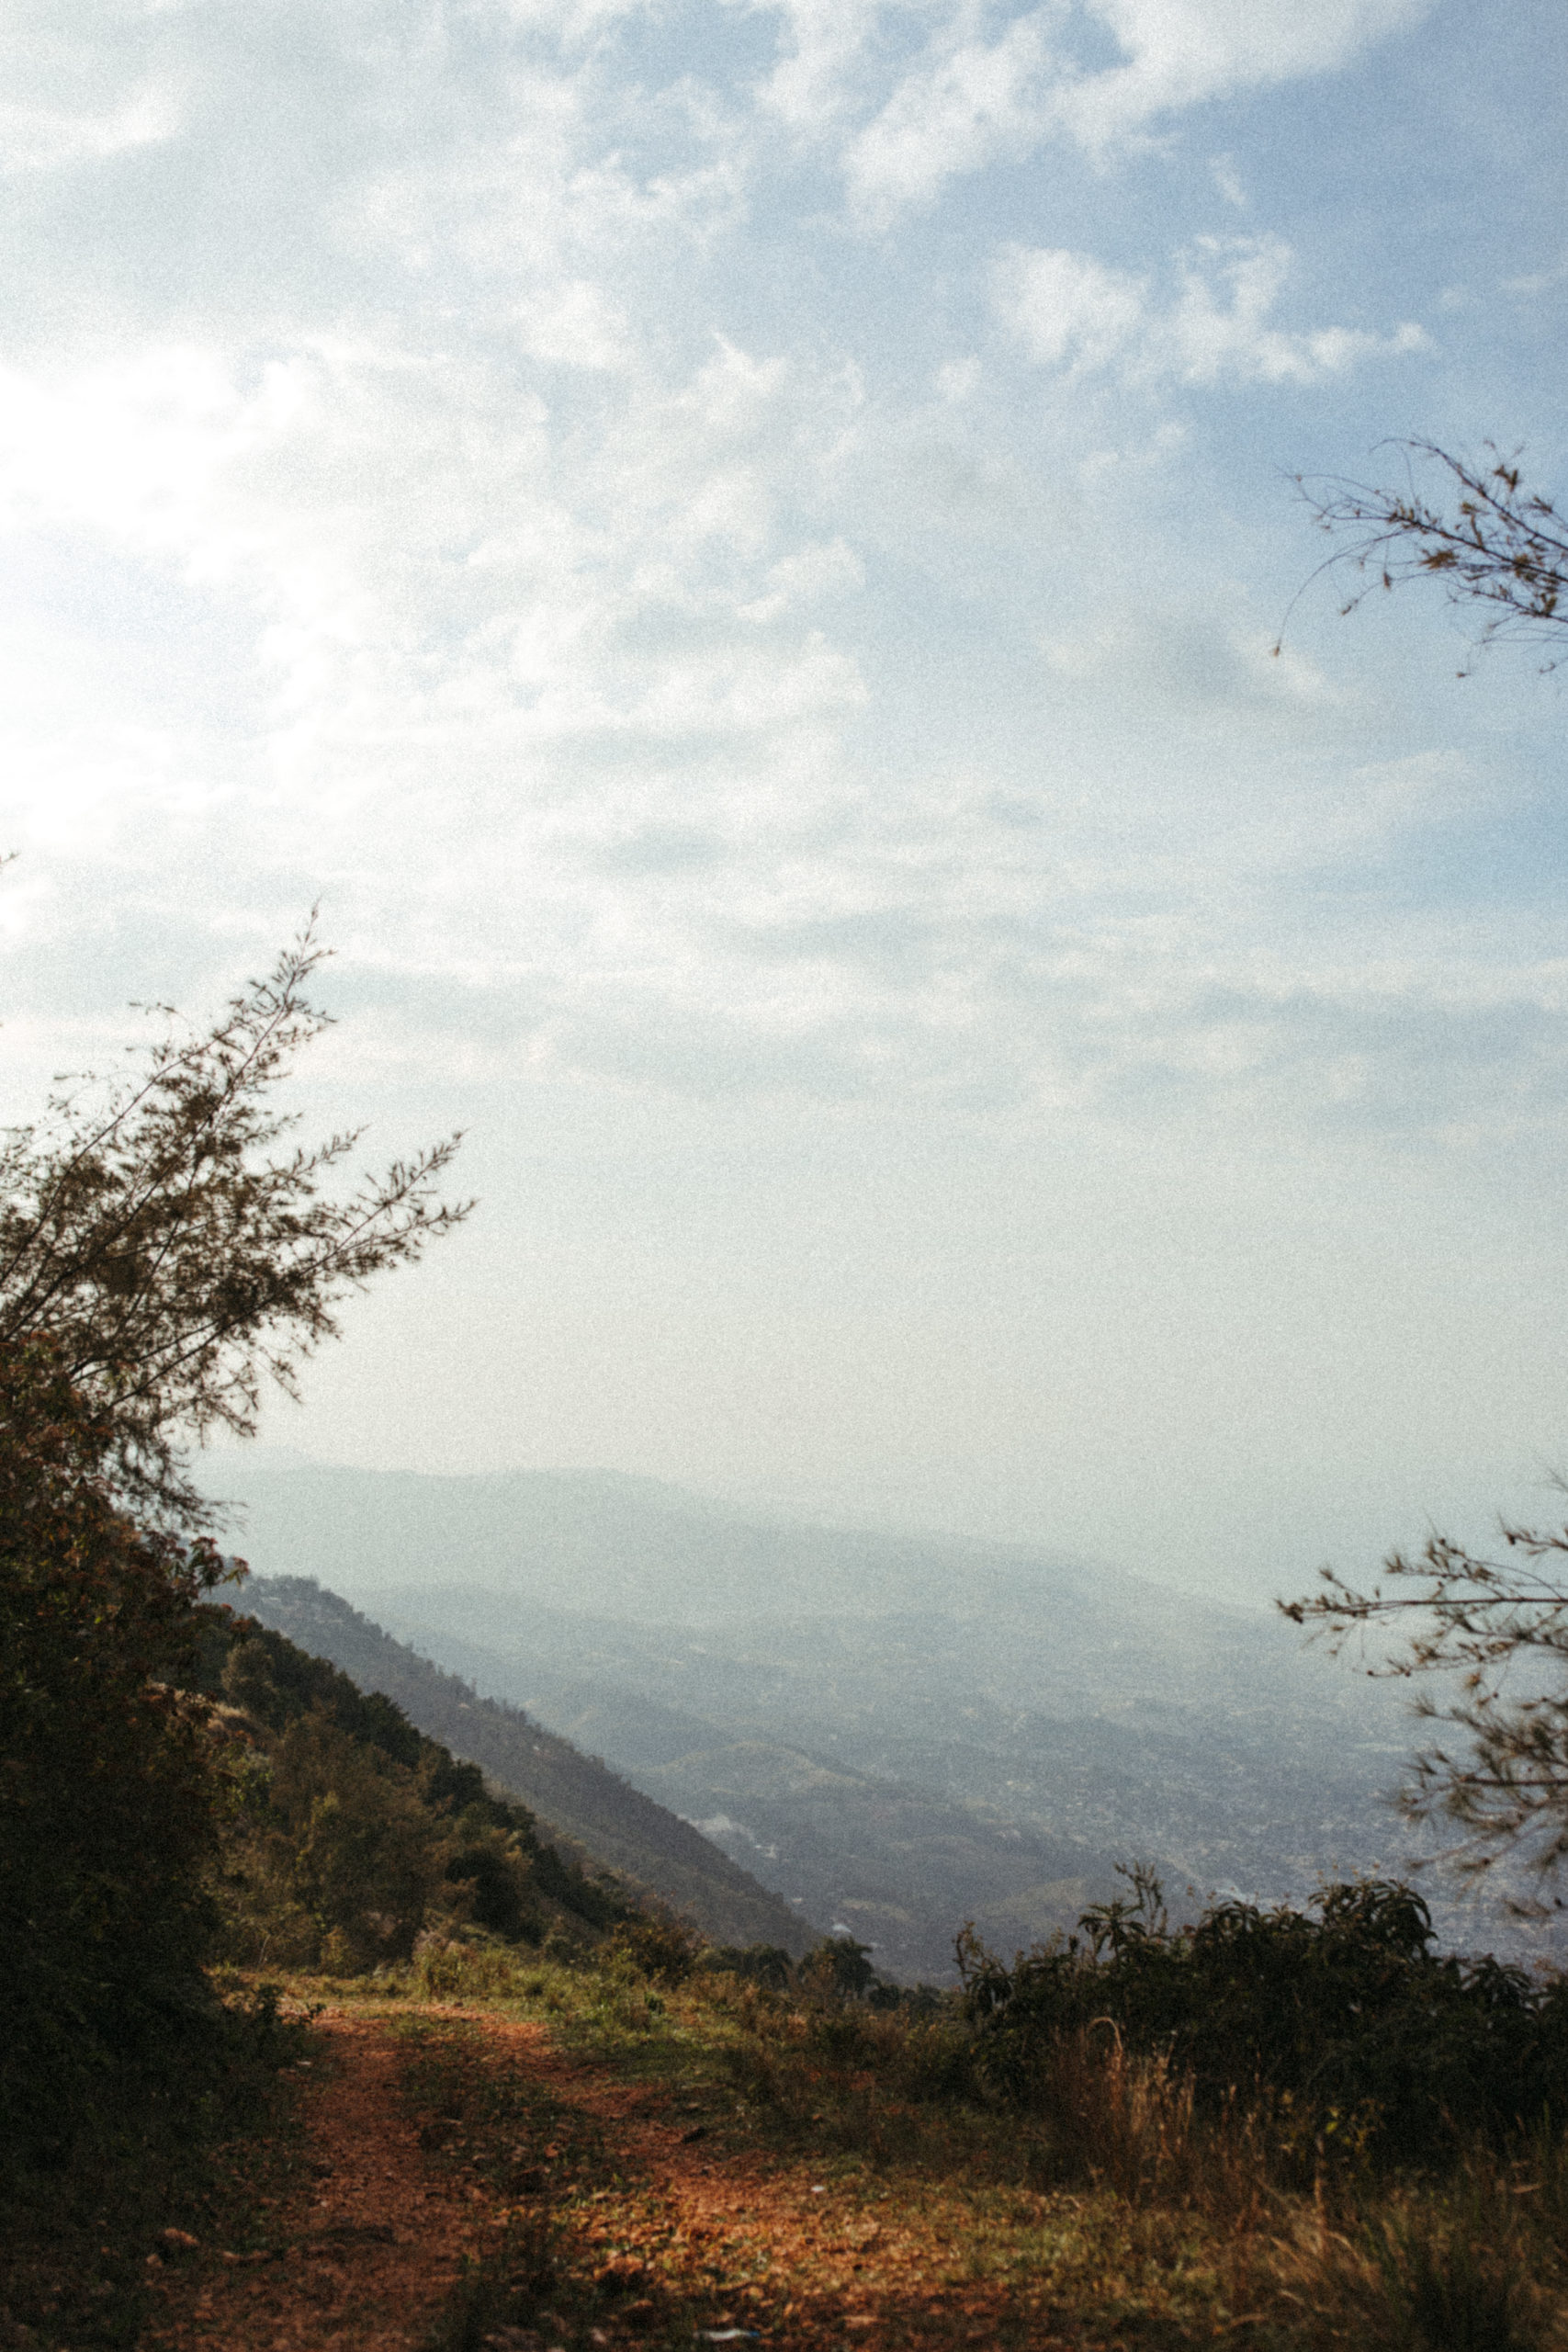 Landscape photograph in the mountains of Kenscoff, Haiti